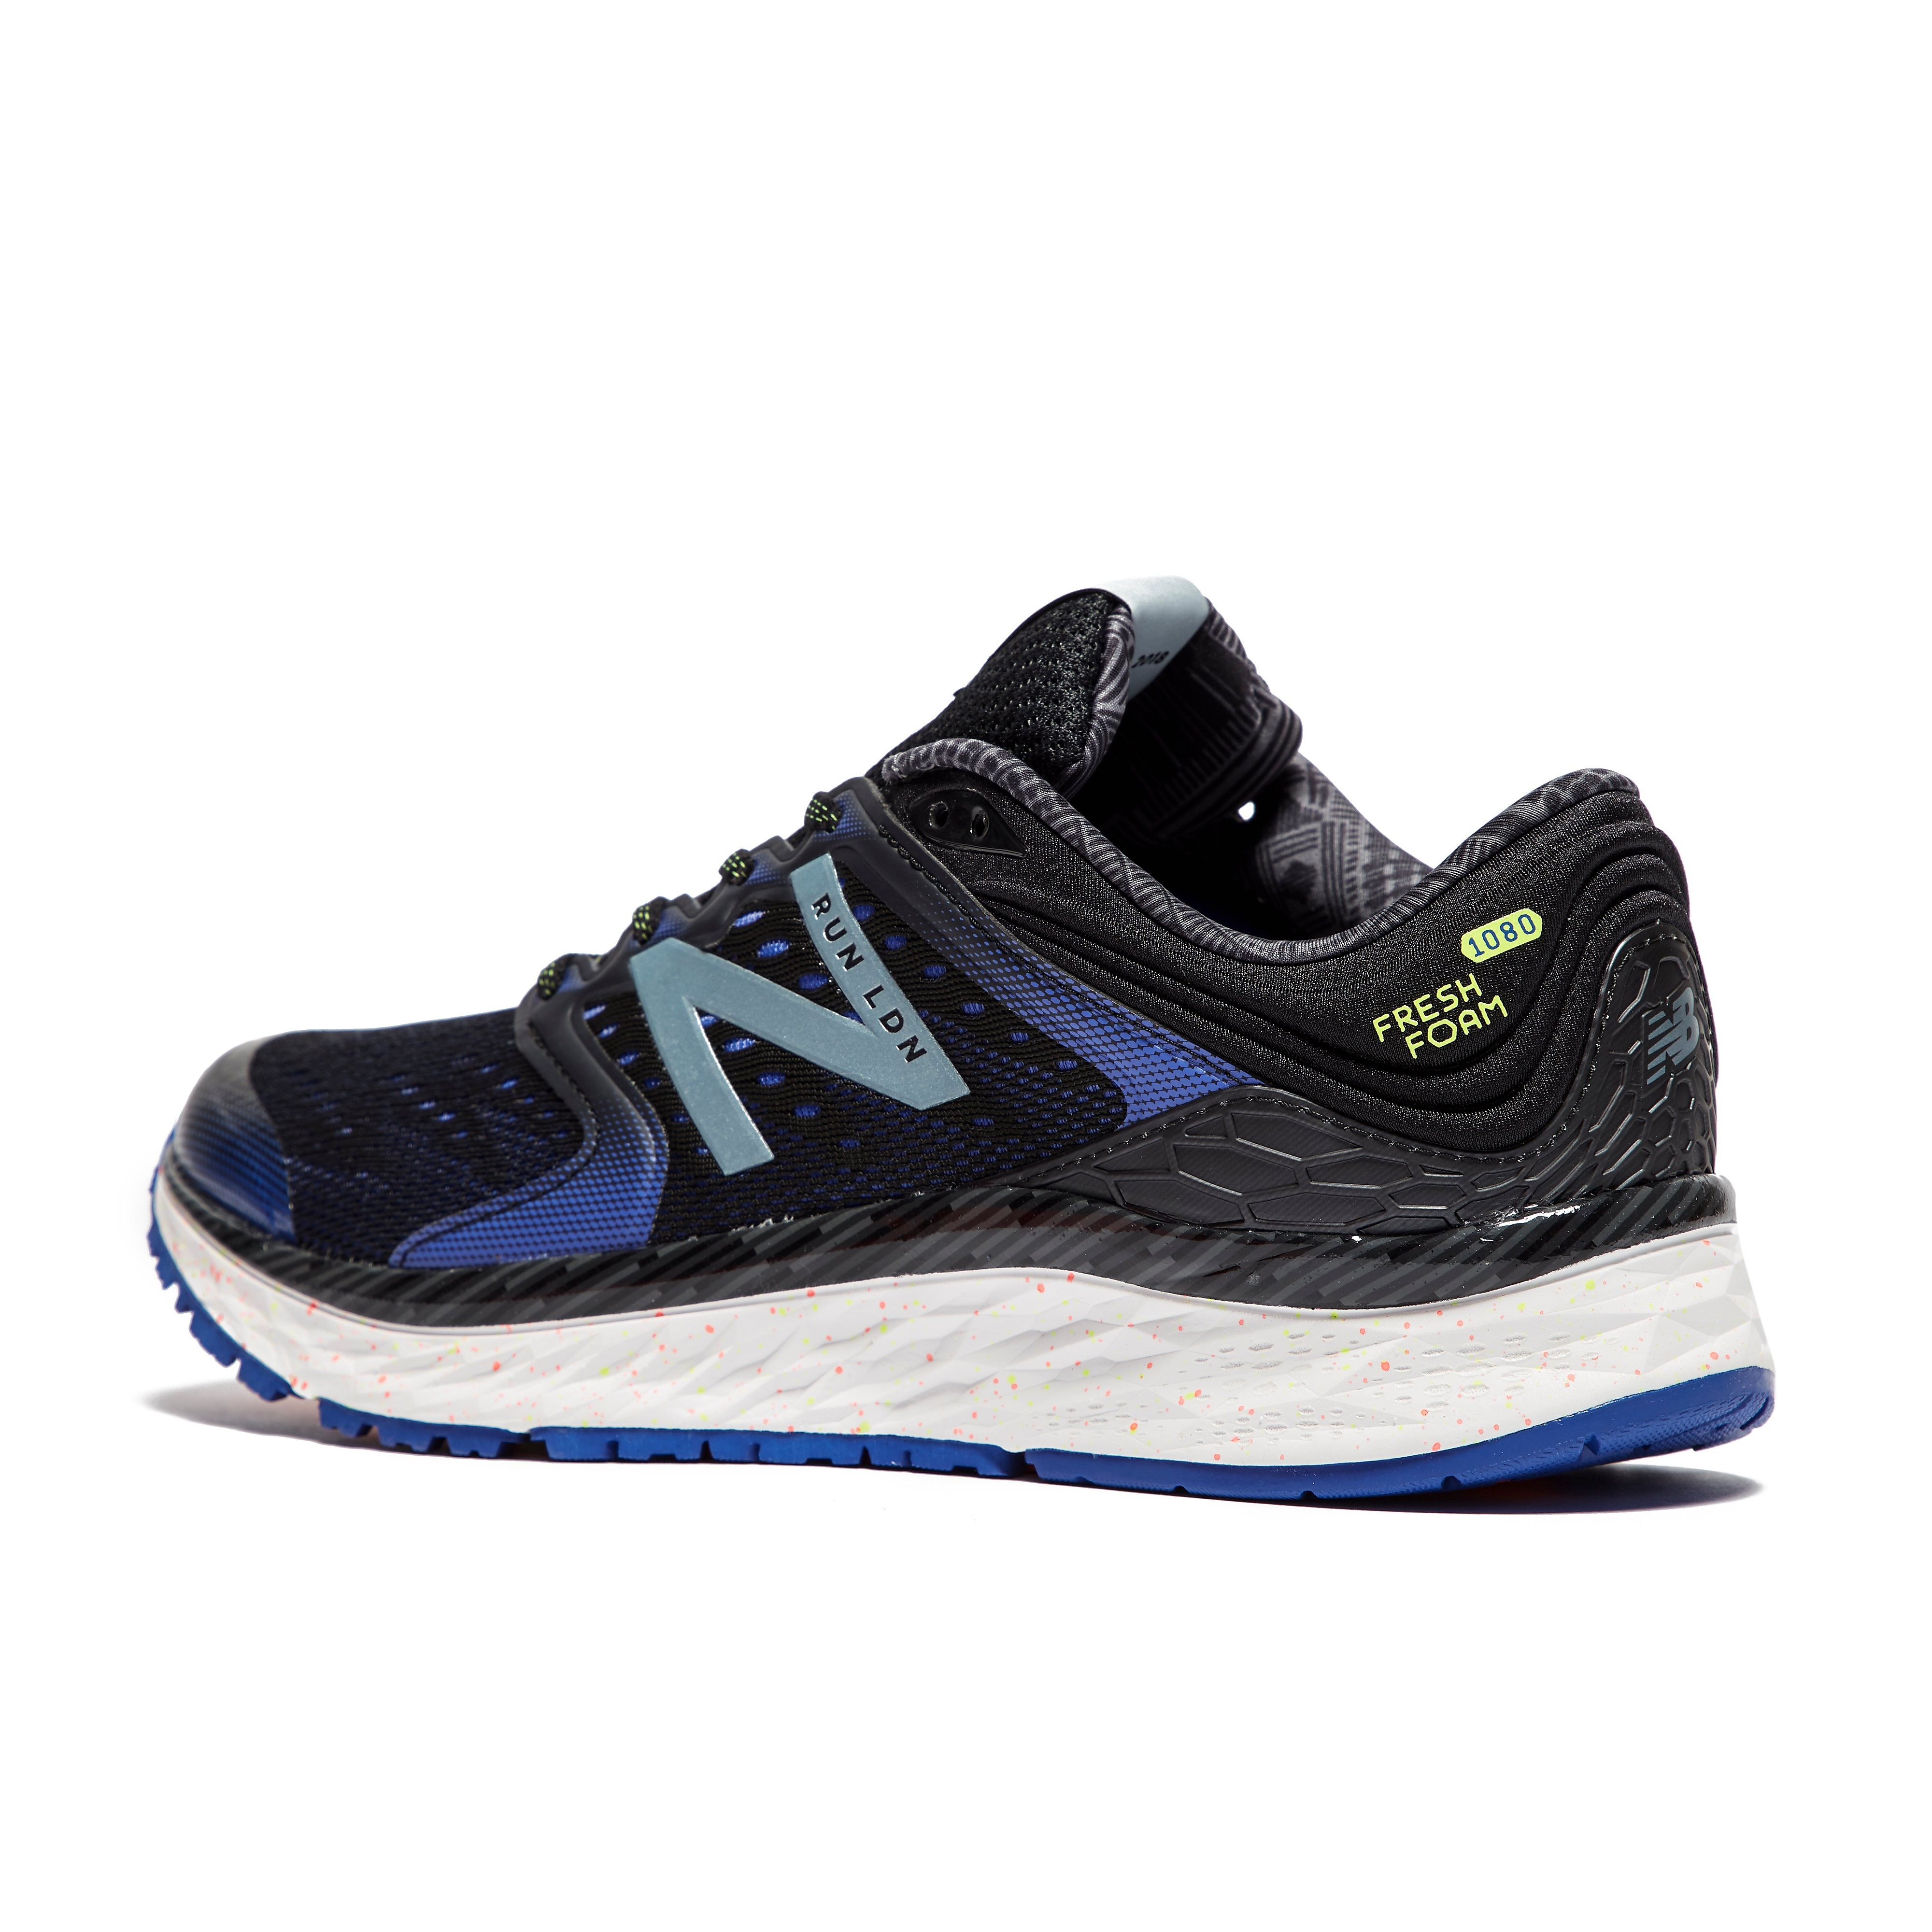 New Balance 1080v8 London Marathon Edition Men's Running Shoes